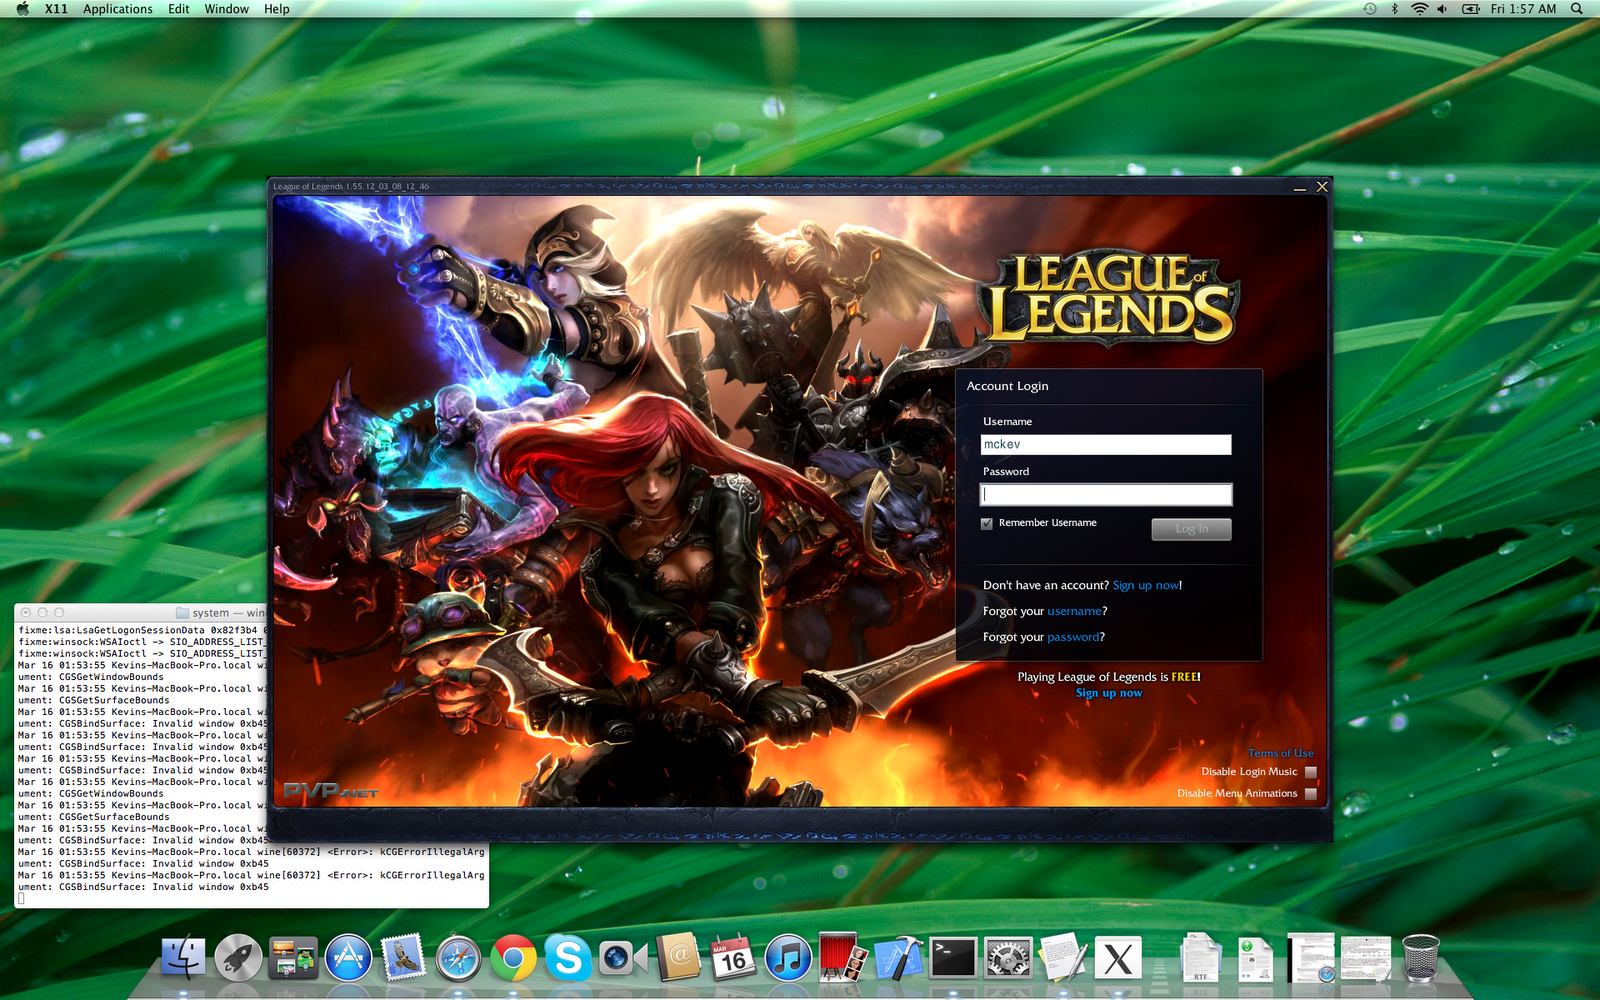 How to Delete League of Legends Files on Mac